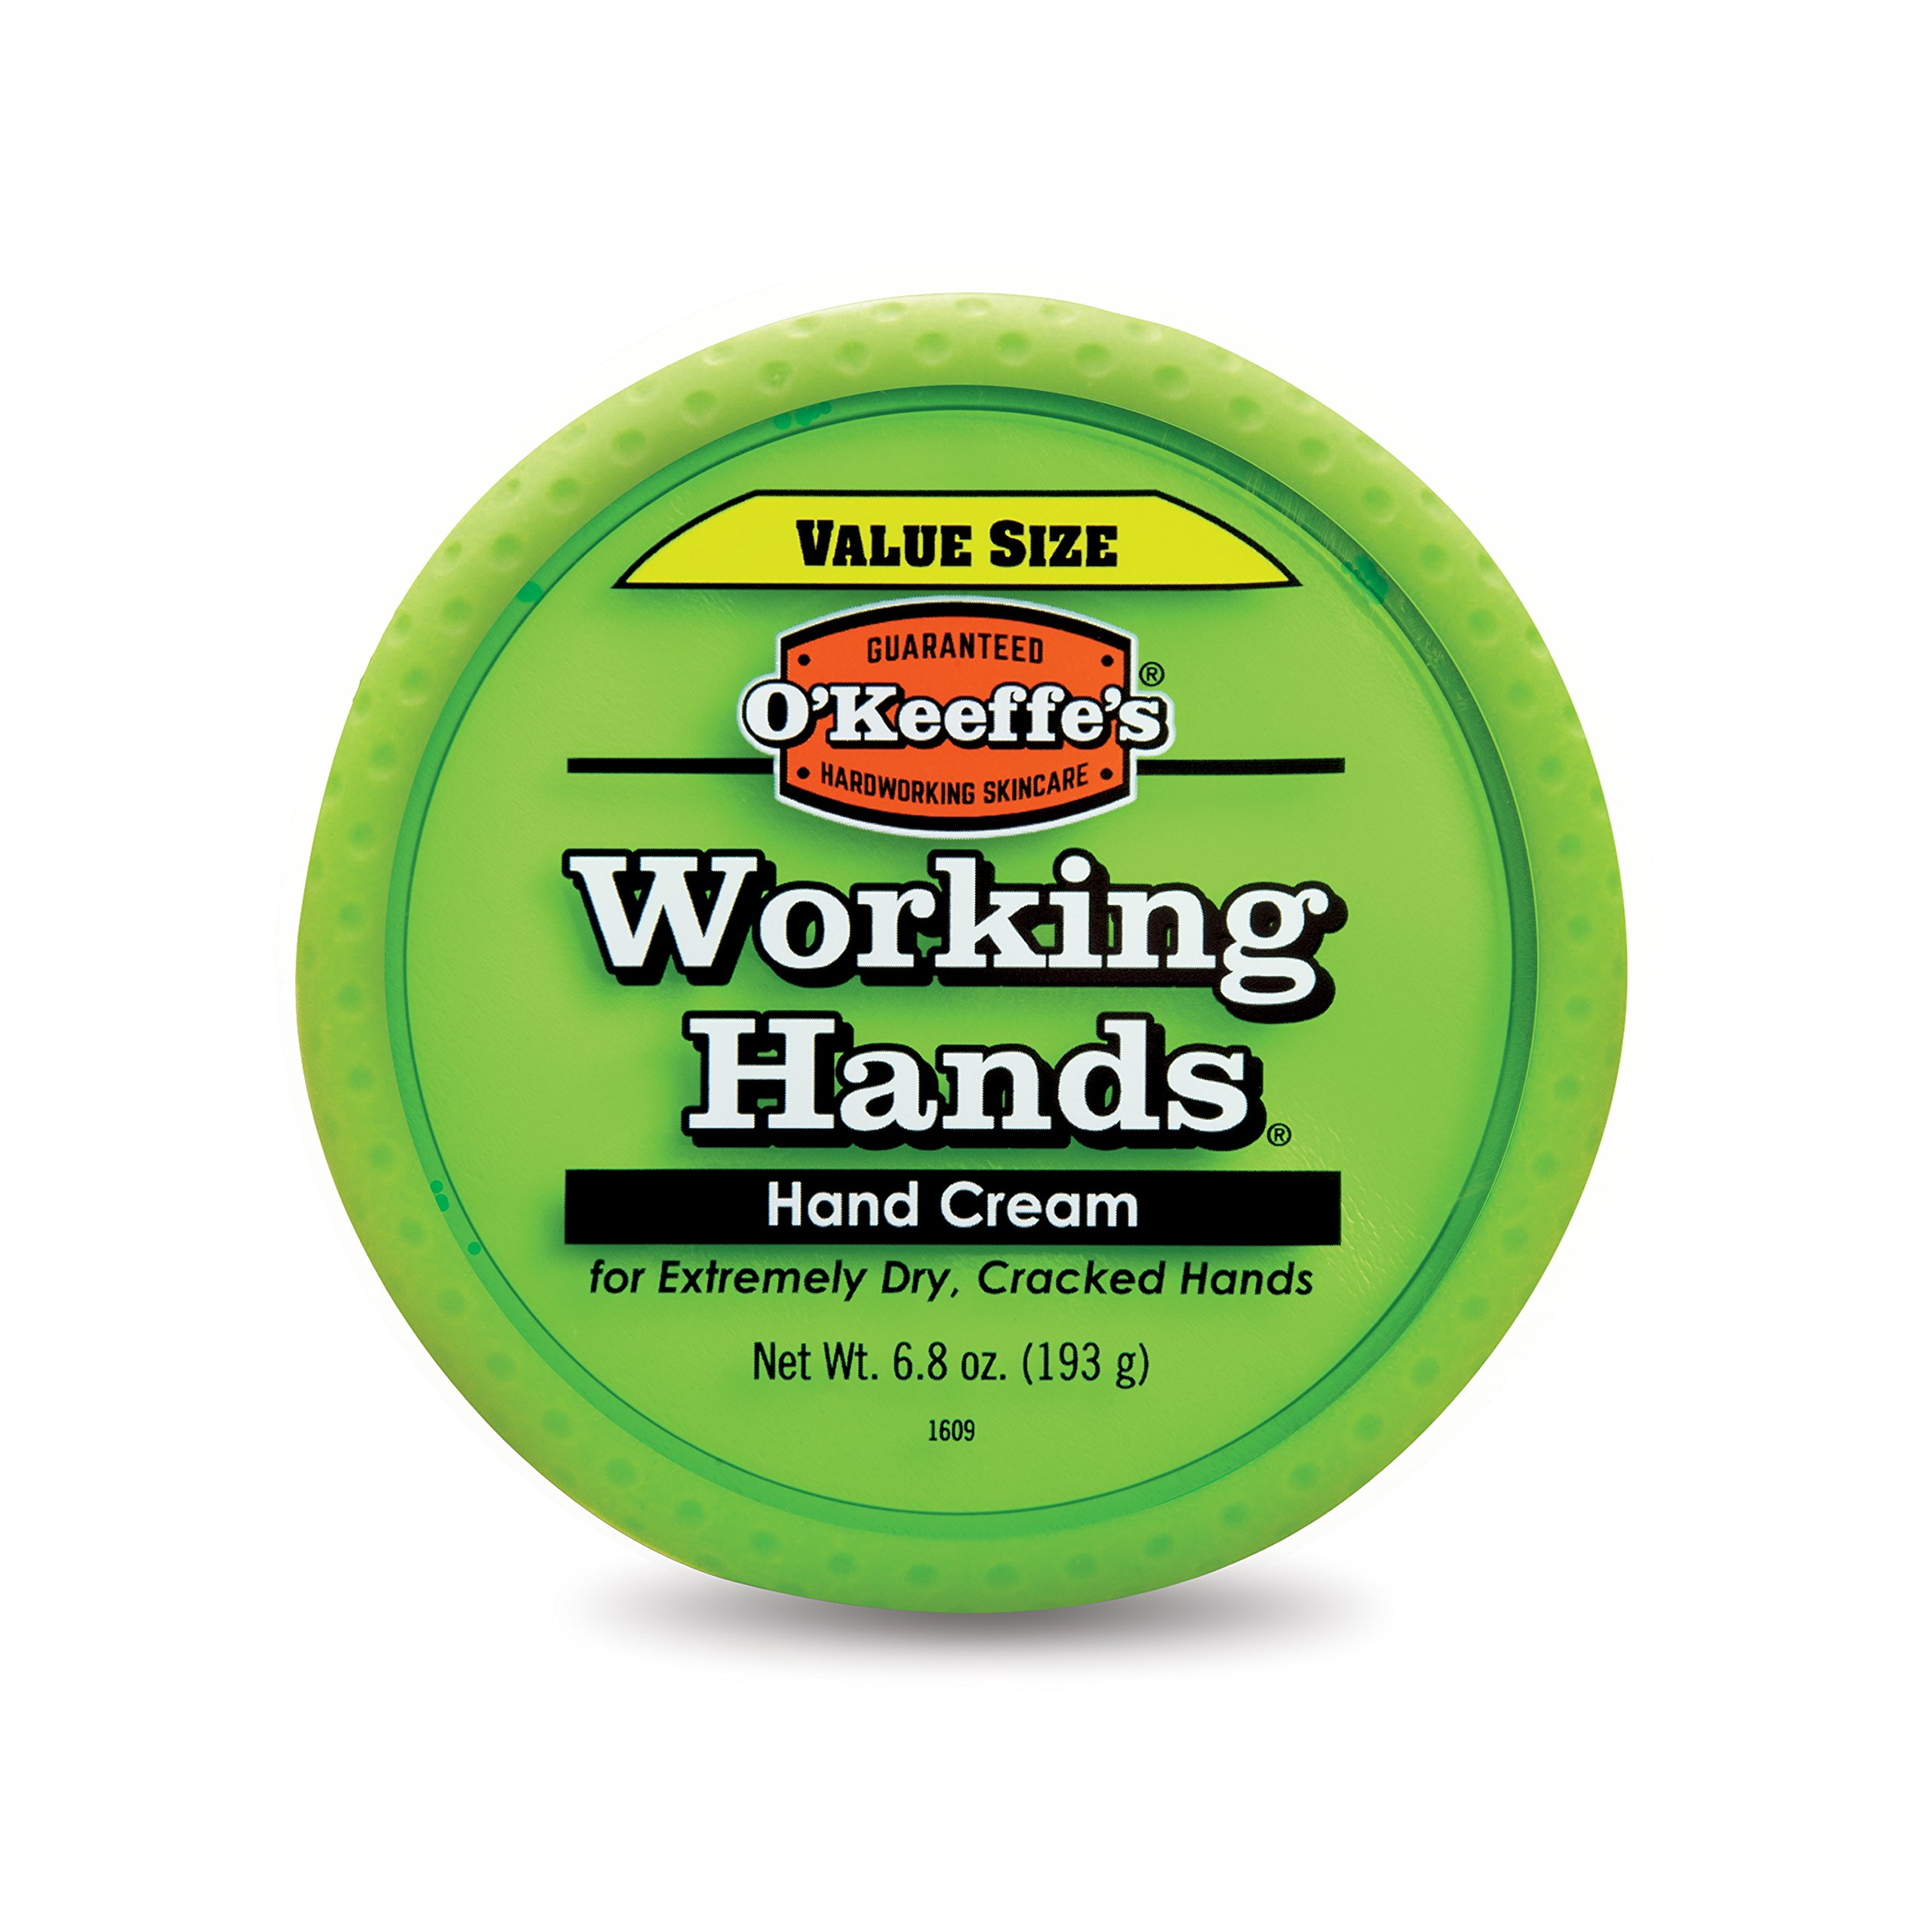 O'Keeffe's Working Hands Hand Cream Value Size, 6.8 ounce Jar by O'Keeffe's